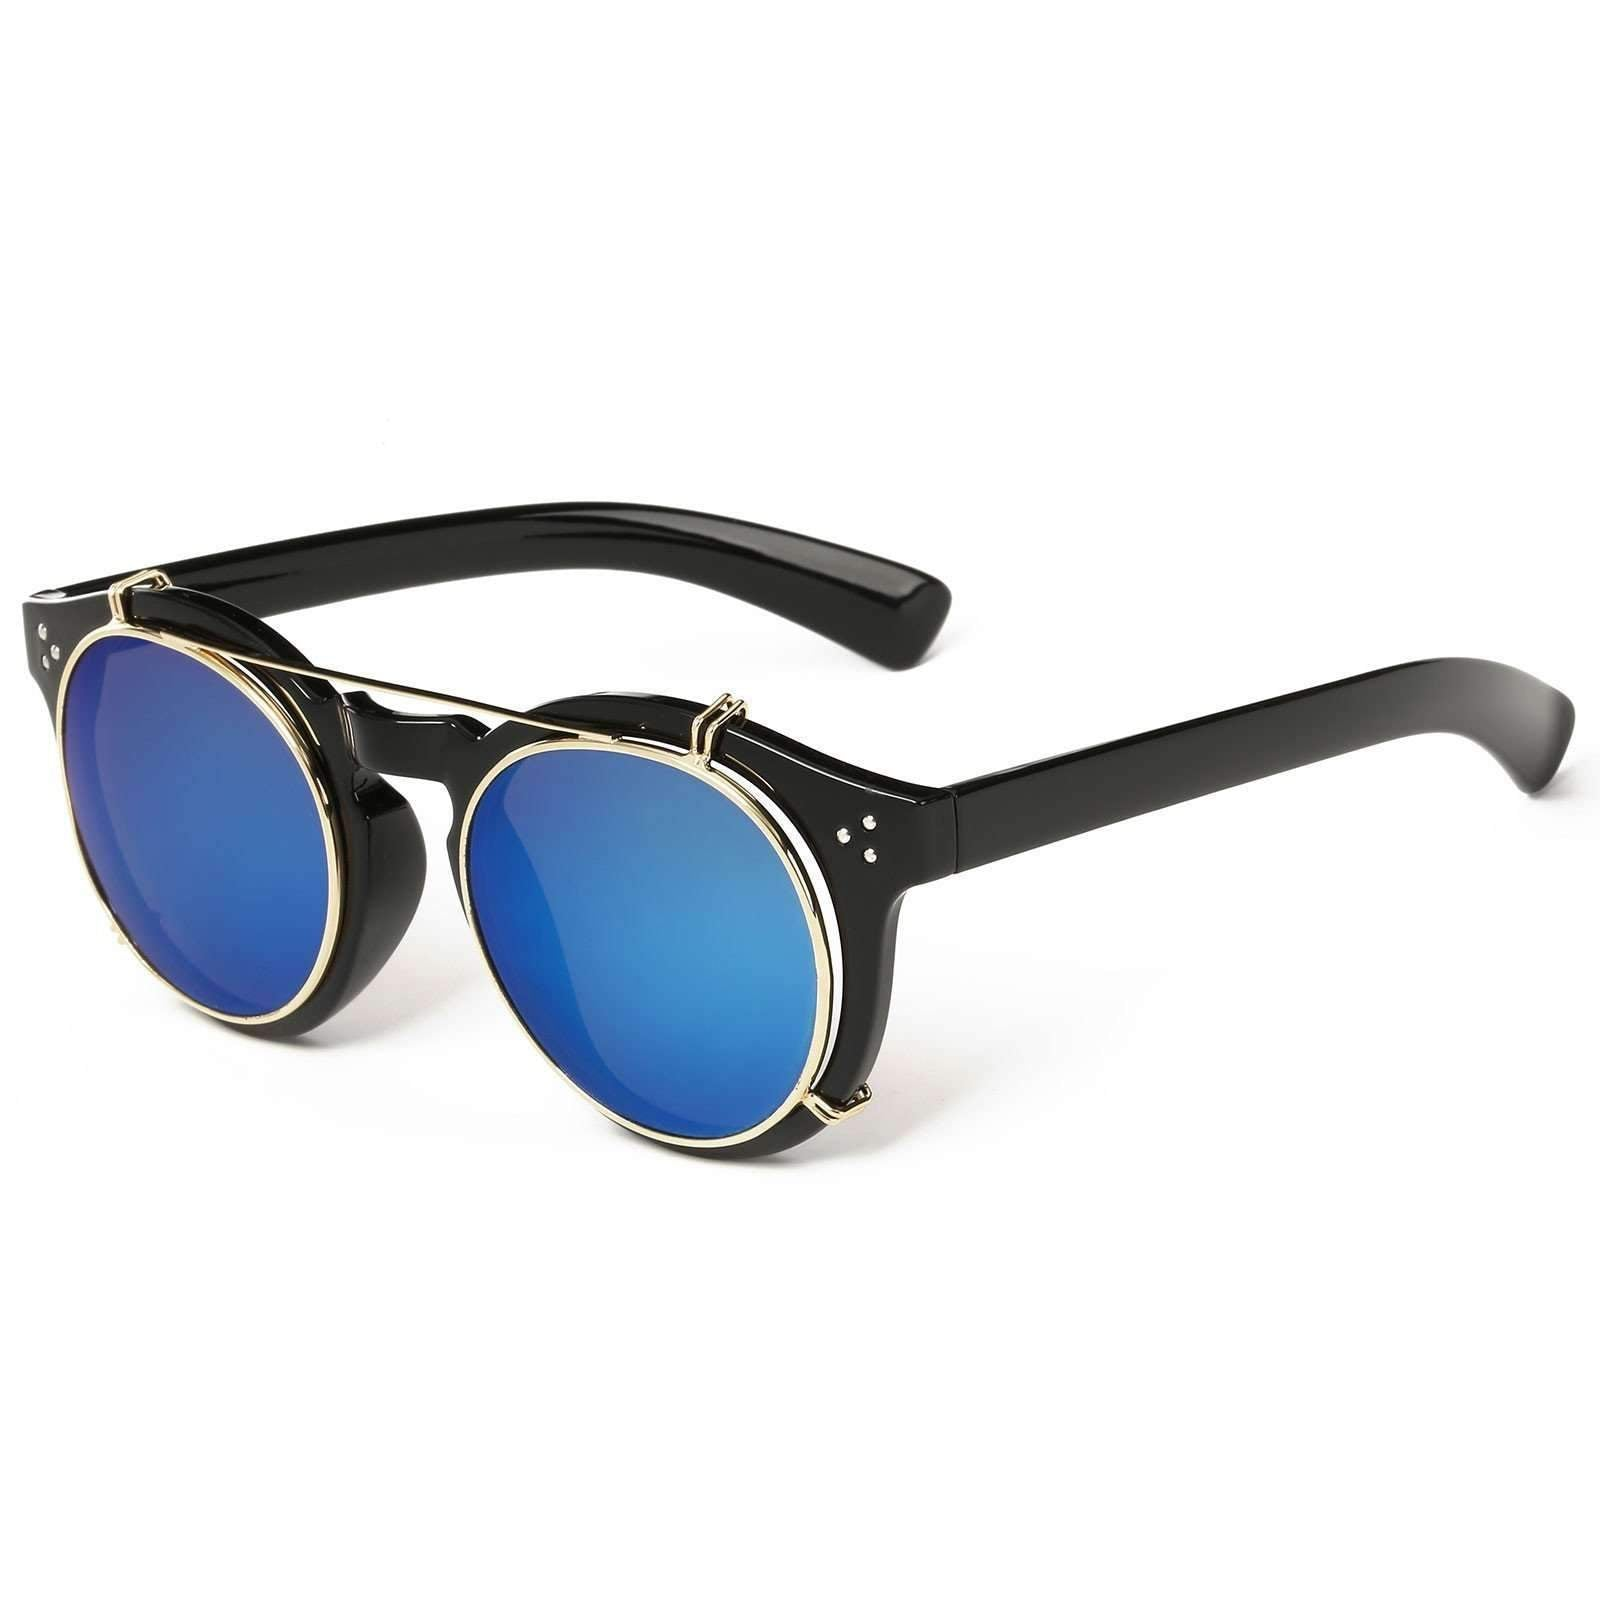 Steampunk Removable Mirrored Lens Round Sunglasses